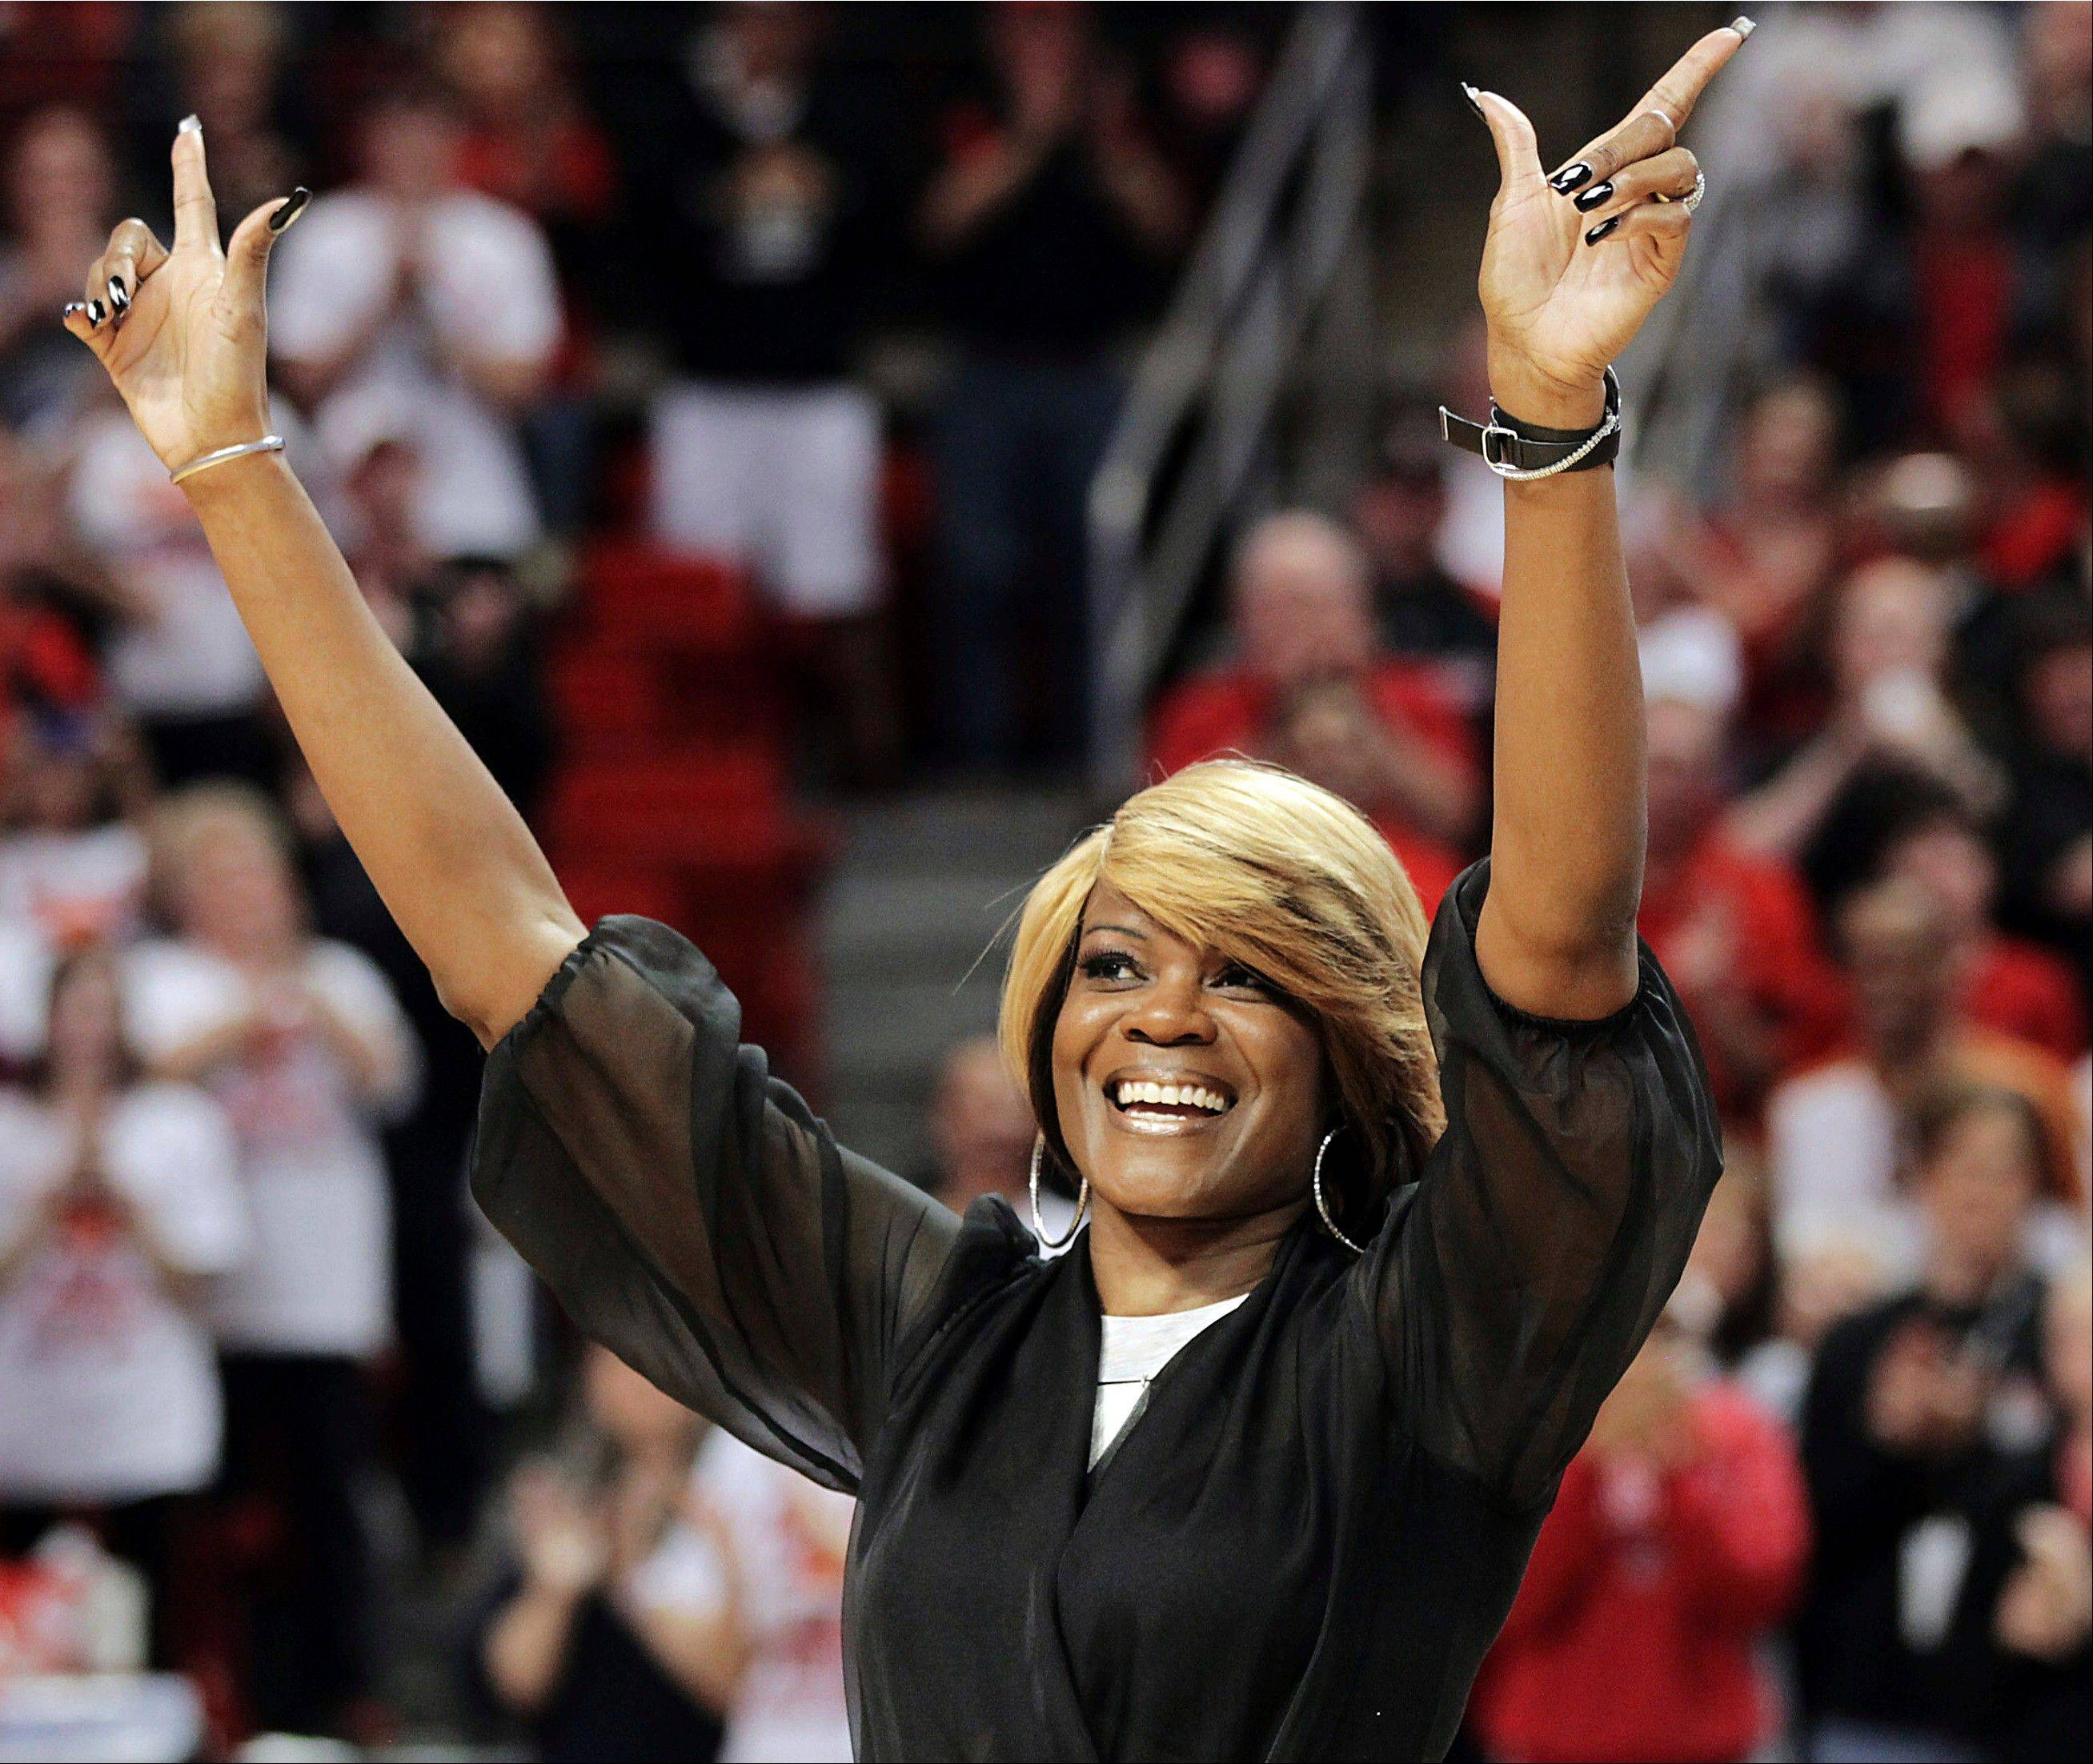 New Loyola women's basketball coach Sheryl Swoopes plans to use her fame to best advantage in recruiting and promoting the Ramblers' program.